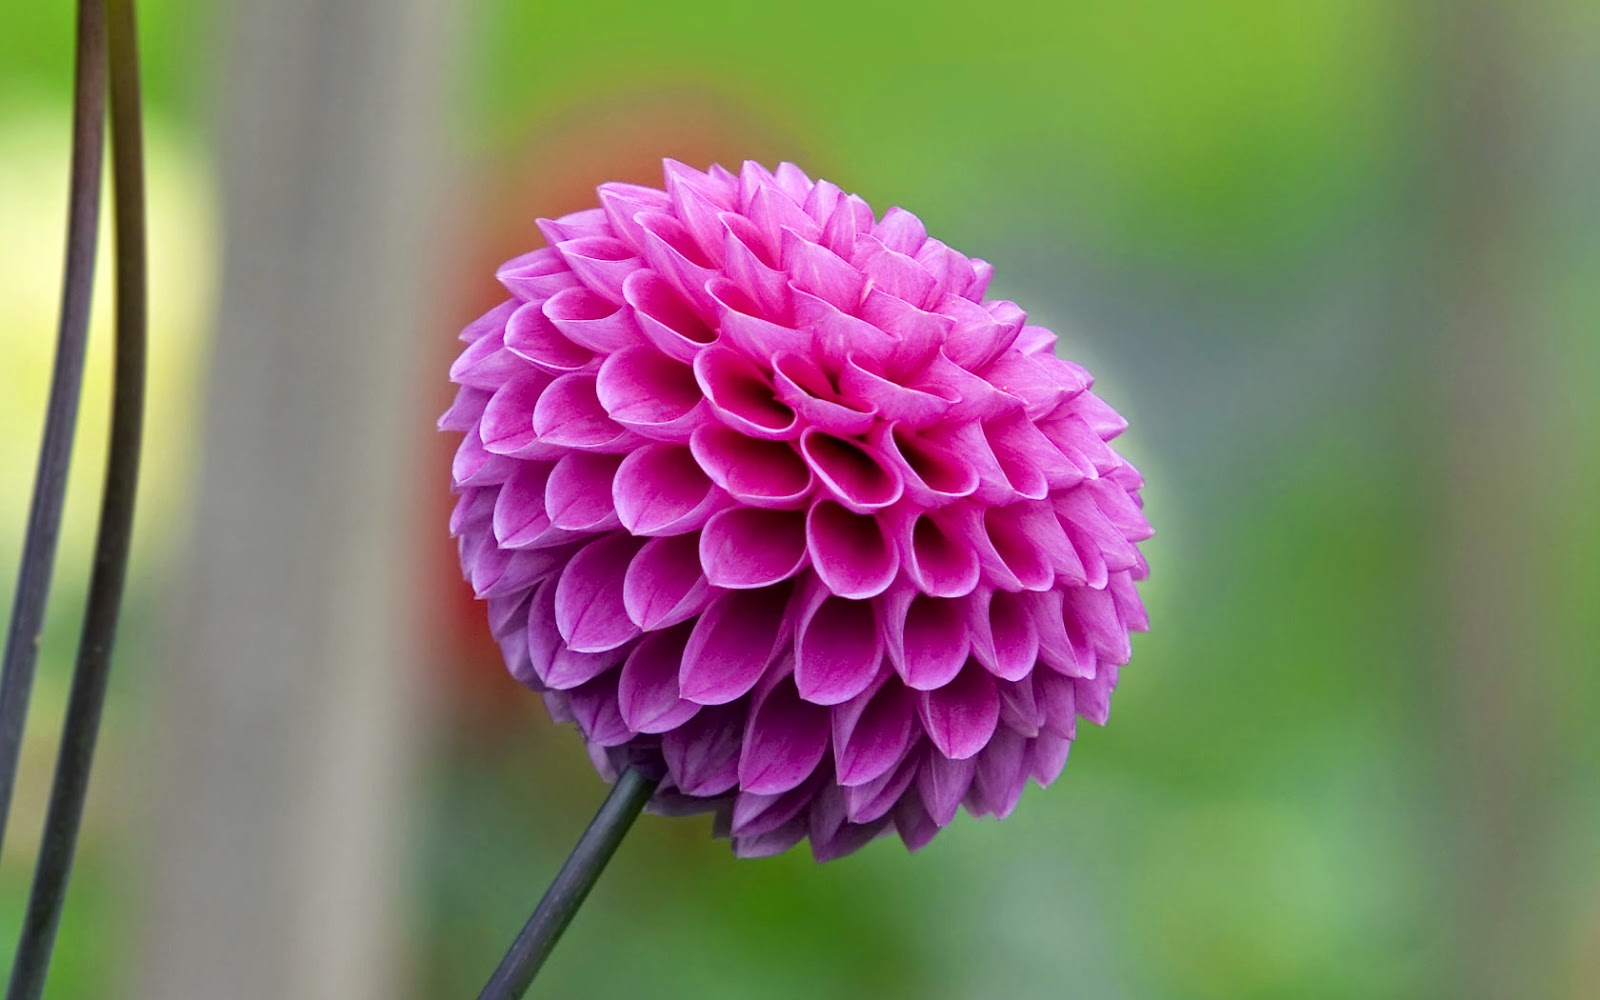 Flower photos most beautiful flowers in the world dahlia the most popular colors of dahlia are pink red light orange and white they are undoubtedly one of the most beautiful flowers in izmirmasajfo